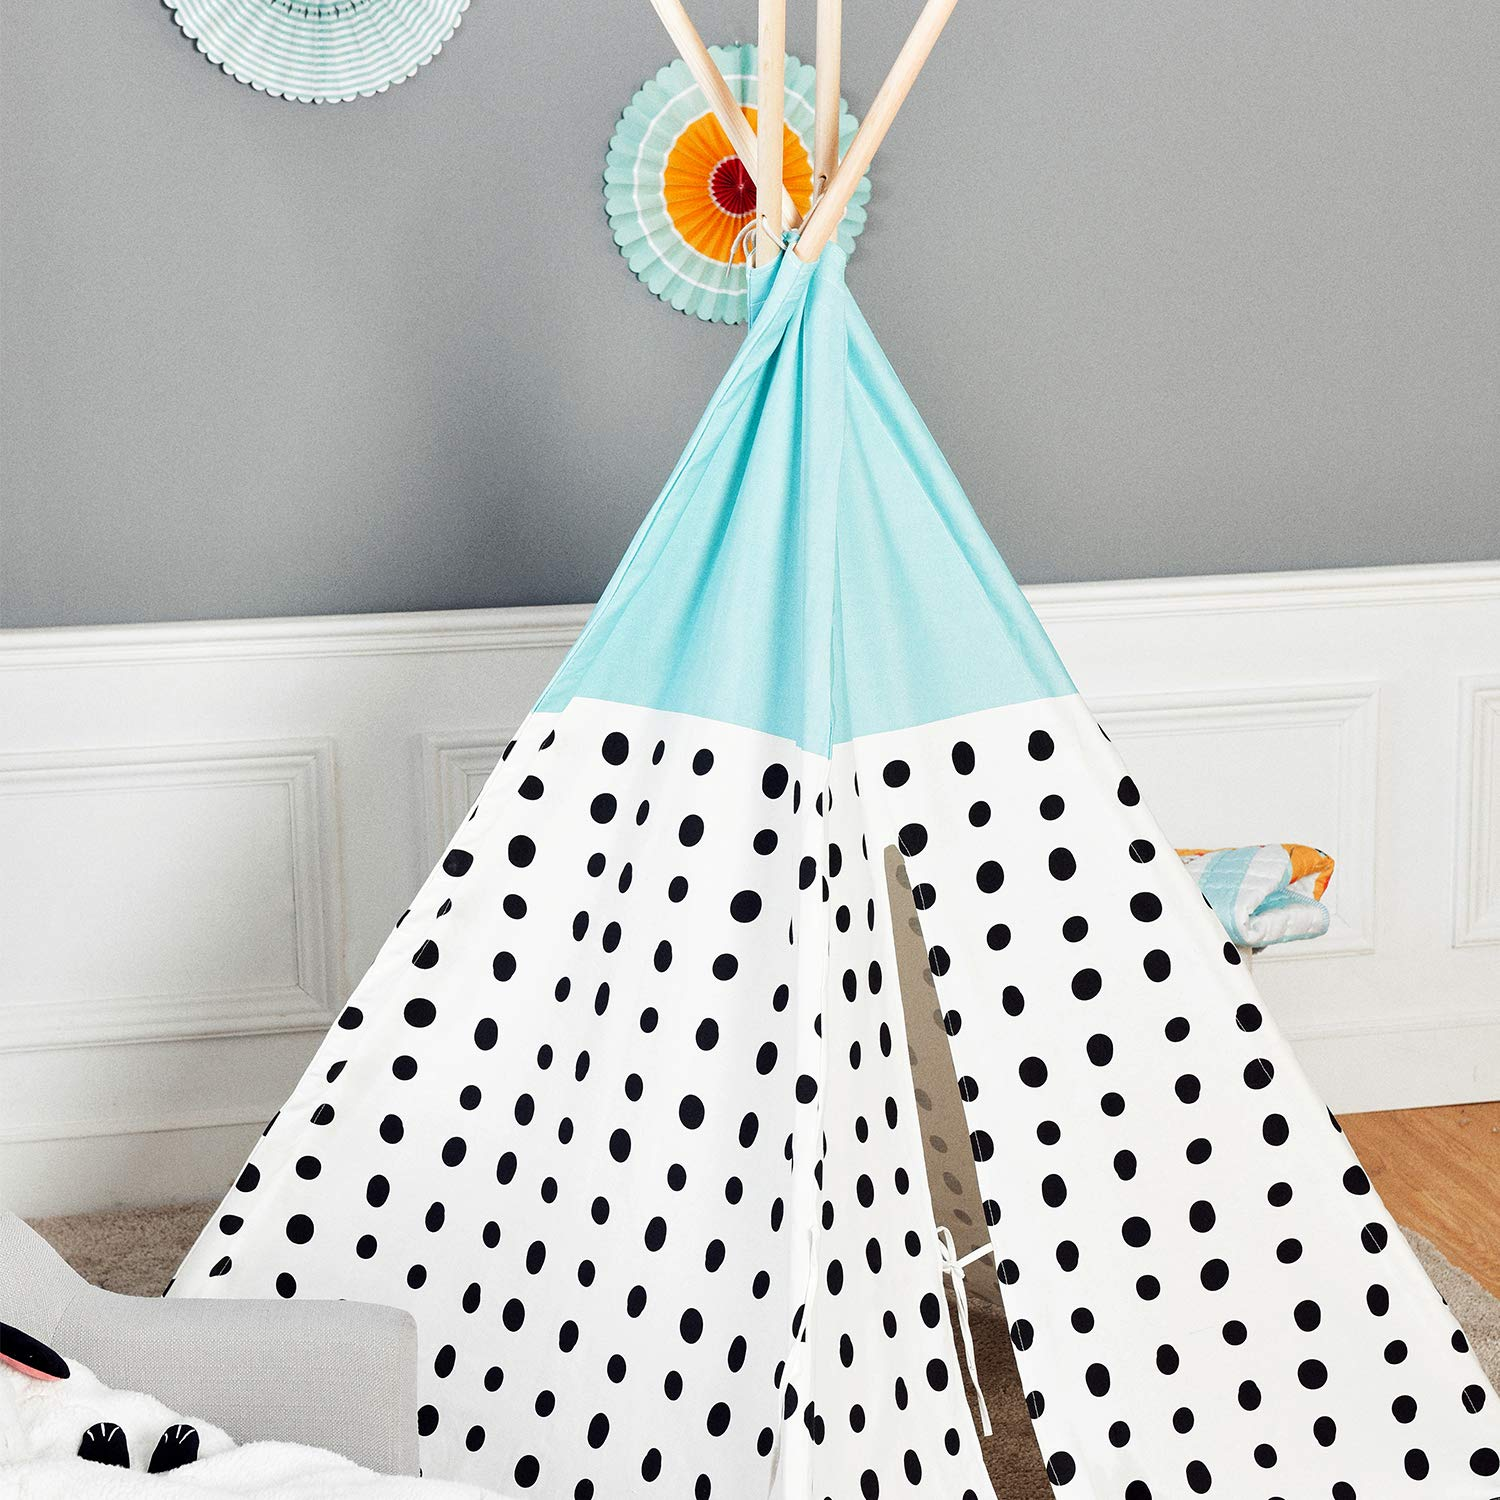 Asweets Teepee Tent for Kids Teepee Play Tent Mat for Boys Indoor Outdoor Play House Tent Indian Canvas Tipi Tent Blue Top Black Point by Asweets (Image #4)